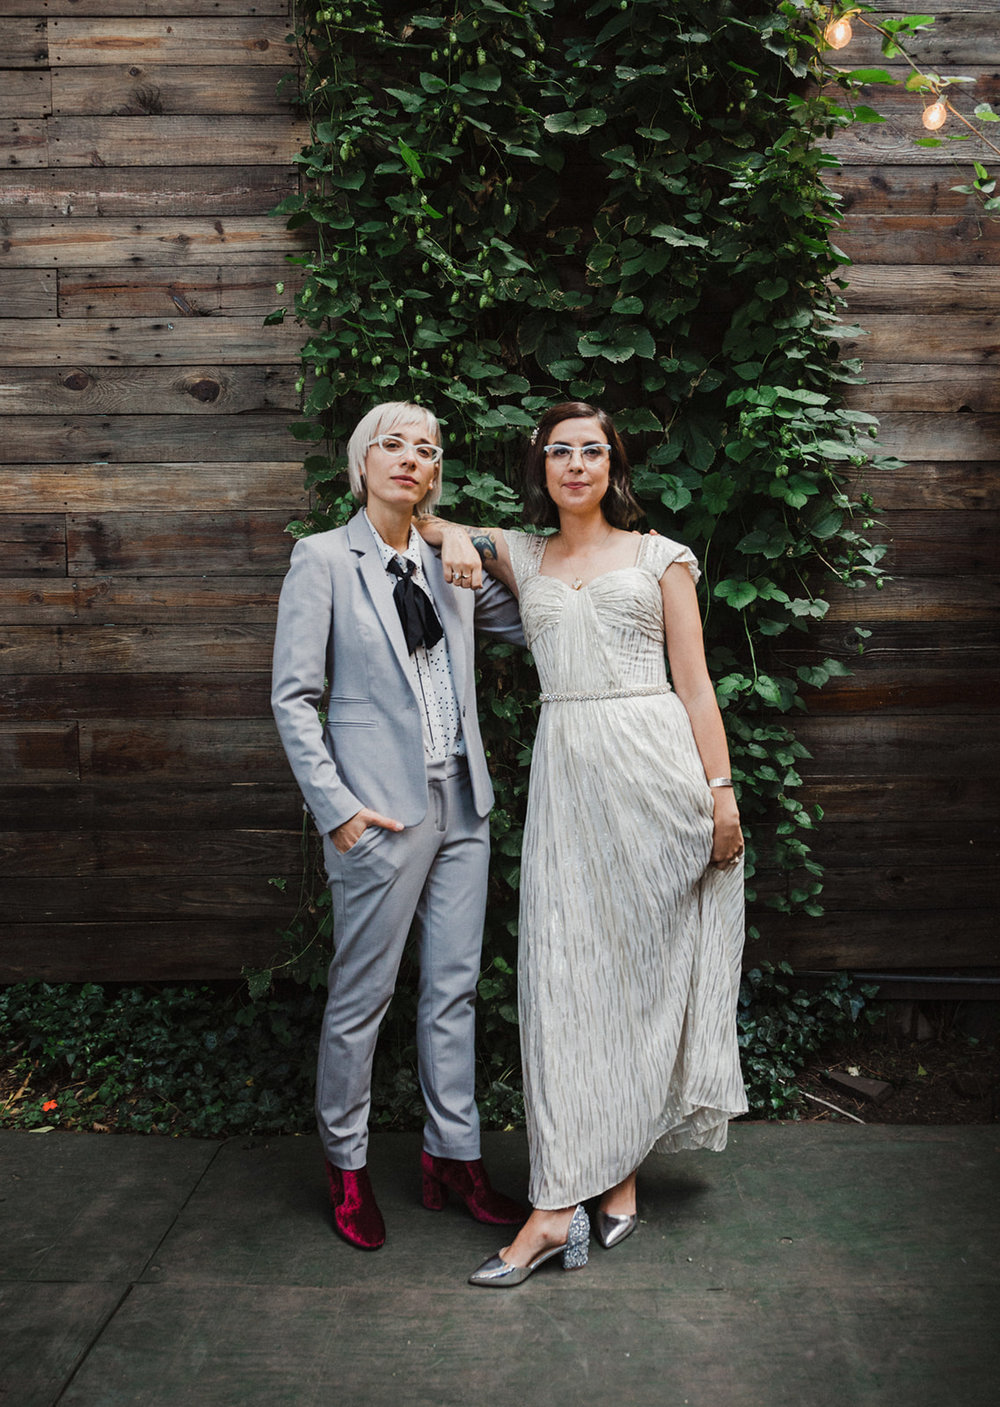 bride in vintage glam and guest in gray suit getting portrait in front of green wall by Austin Texas LGBTQ friendly photographer Ziggy Shoots